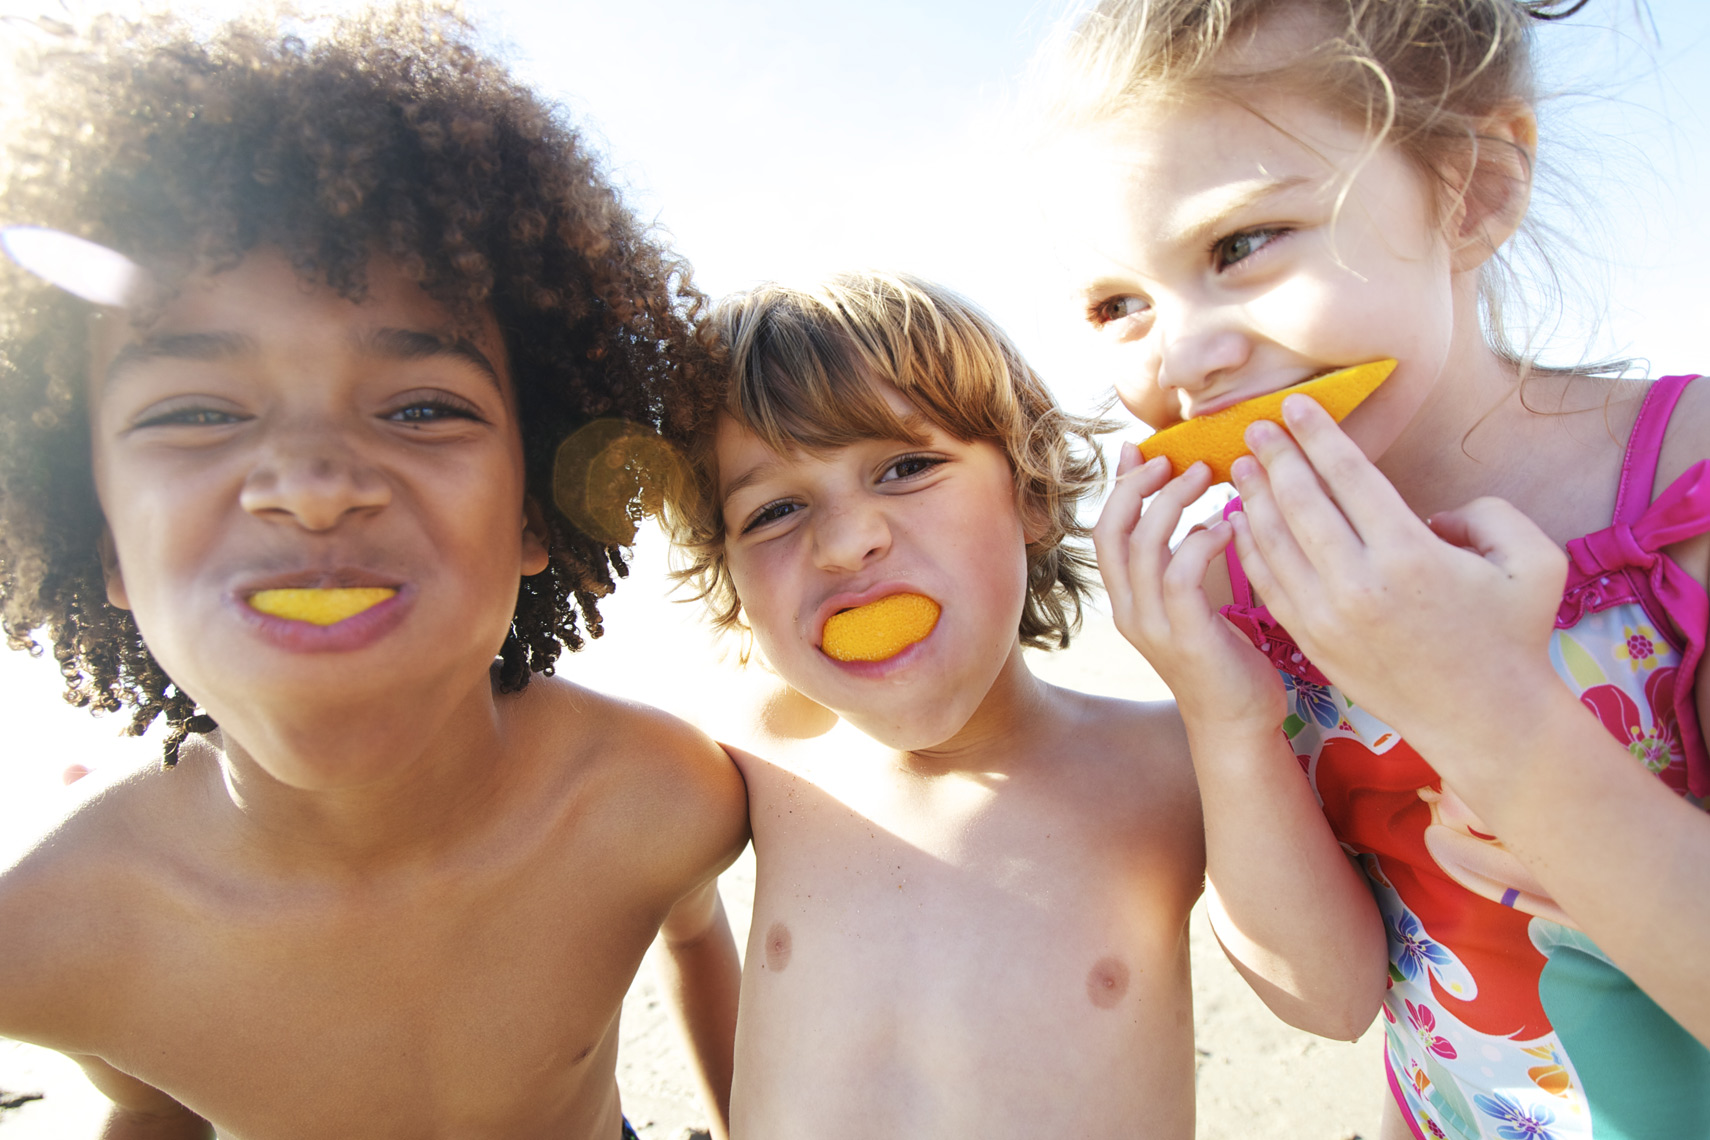 Kids enjoying orange slices as smiles/ Steve Mason Photography